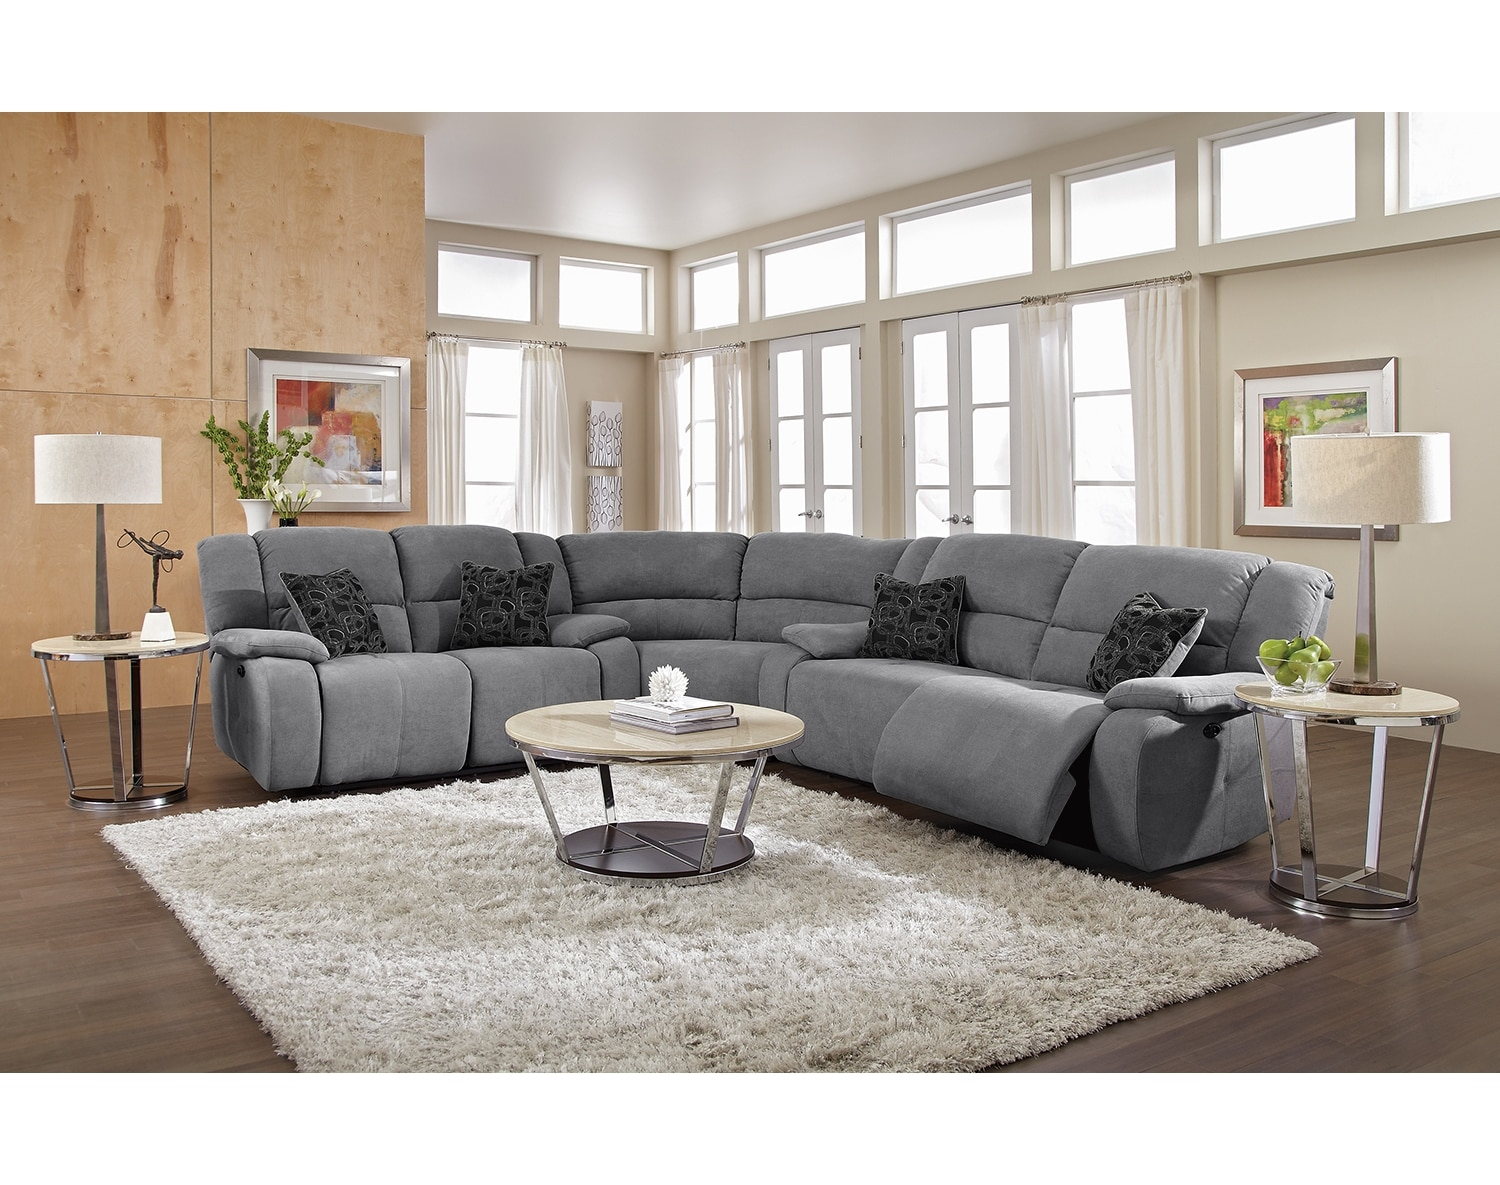 Destin Gray Ii Upholstery Collection American Signature Furniture